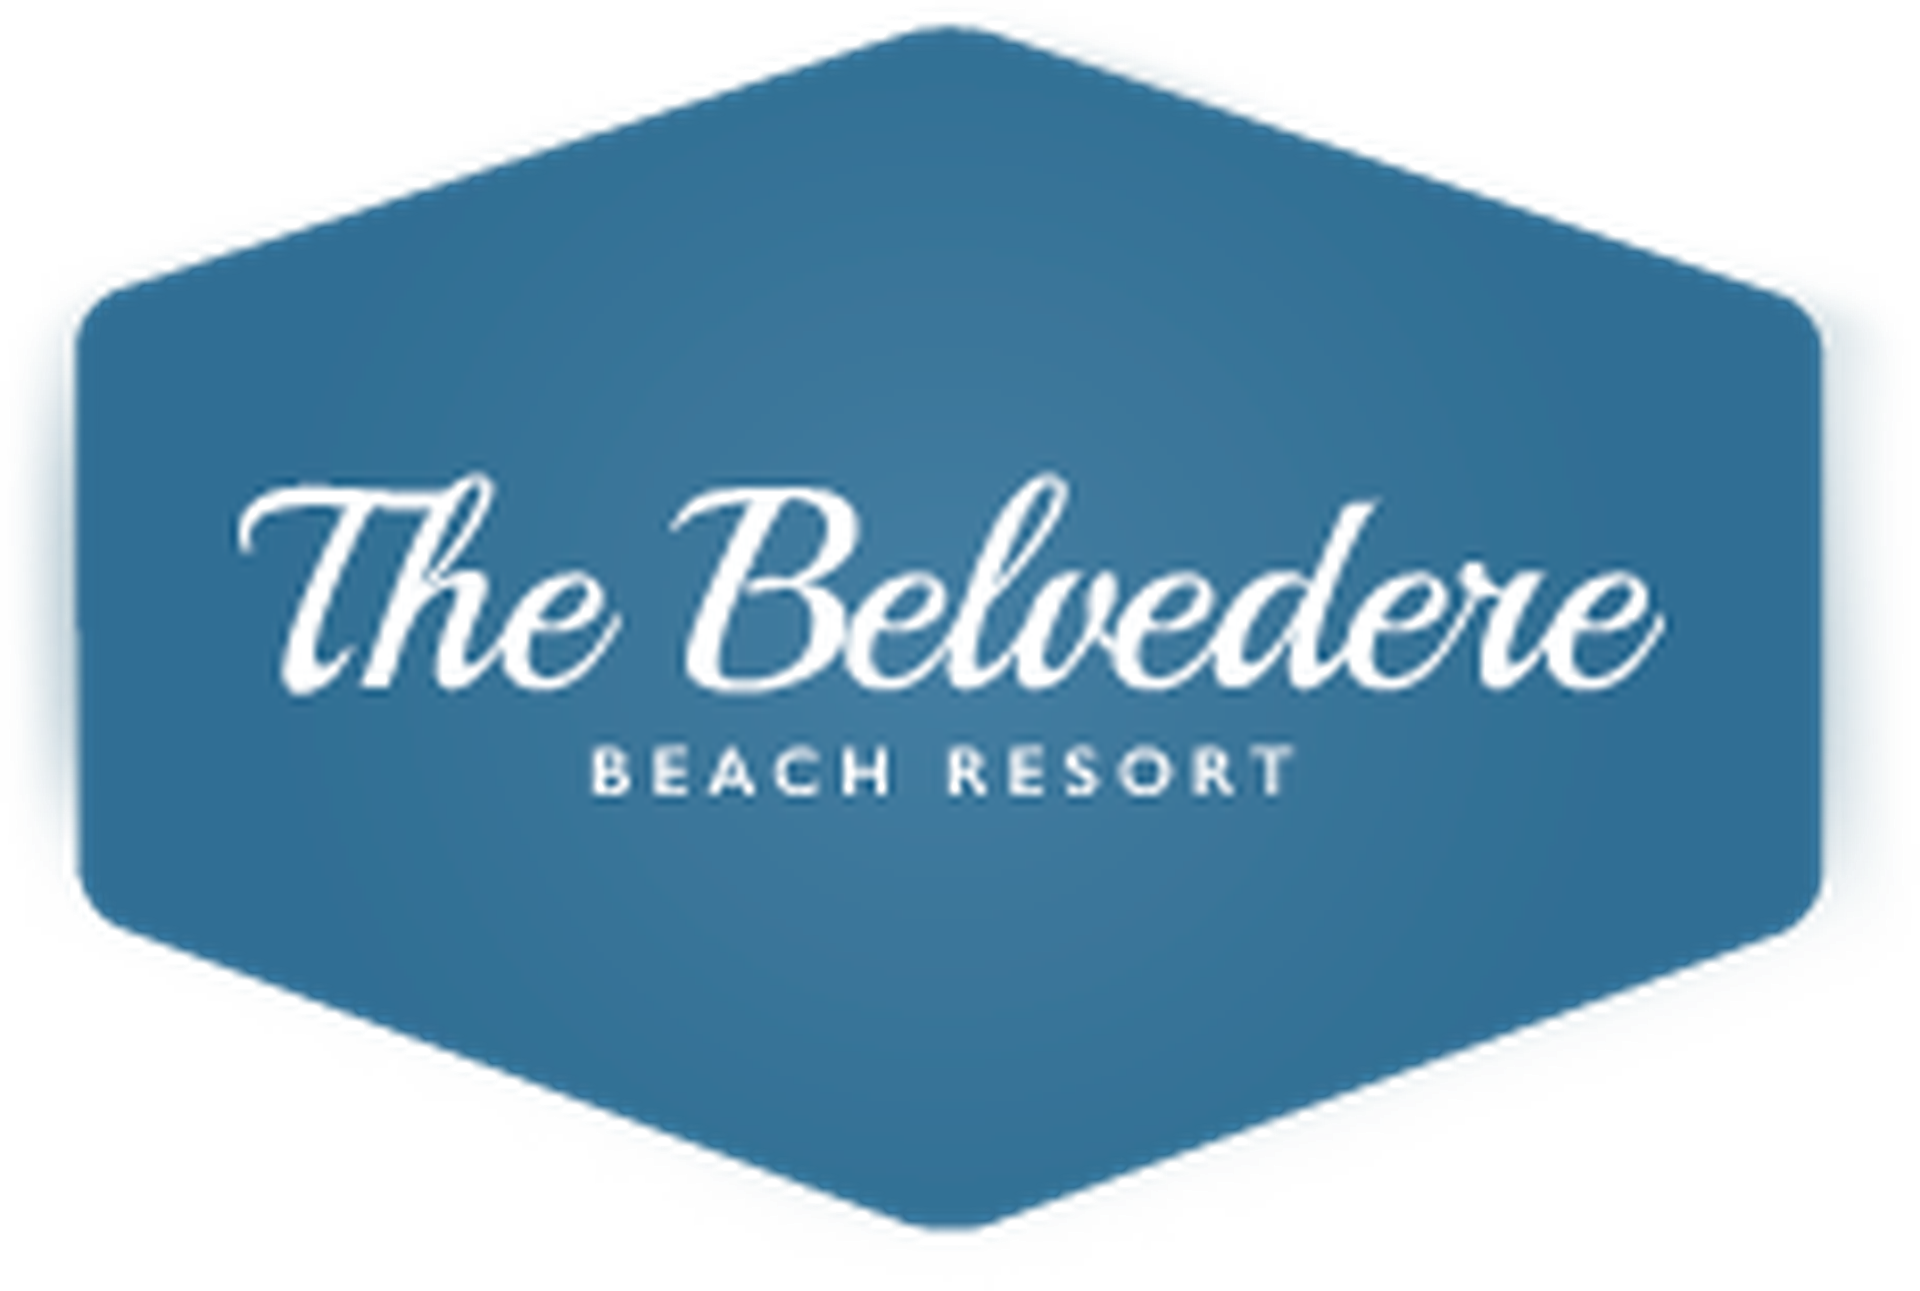 Logo for The Belvedere Beach Resort